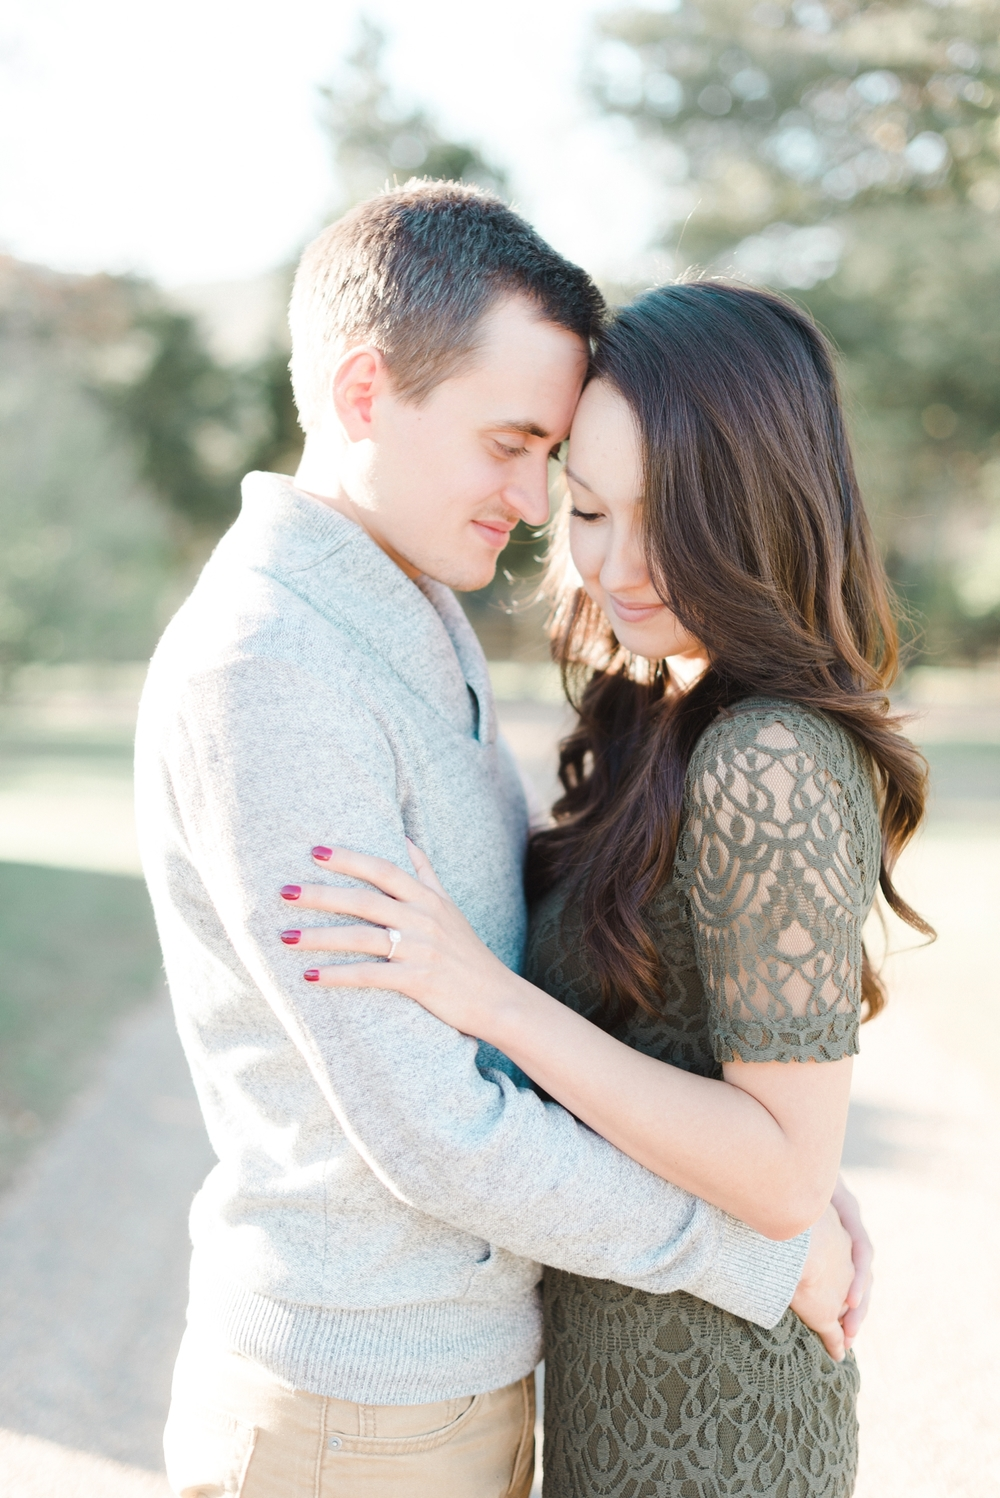 charlottesville_engagement_ashlawn_highland_0011.jpg